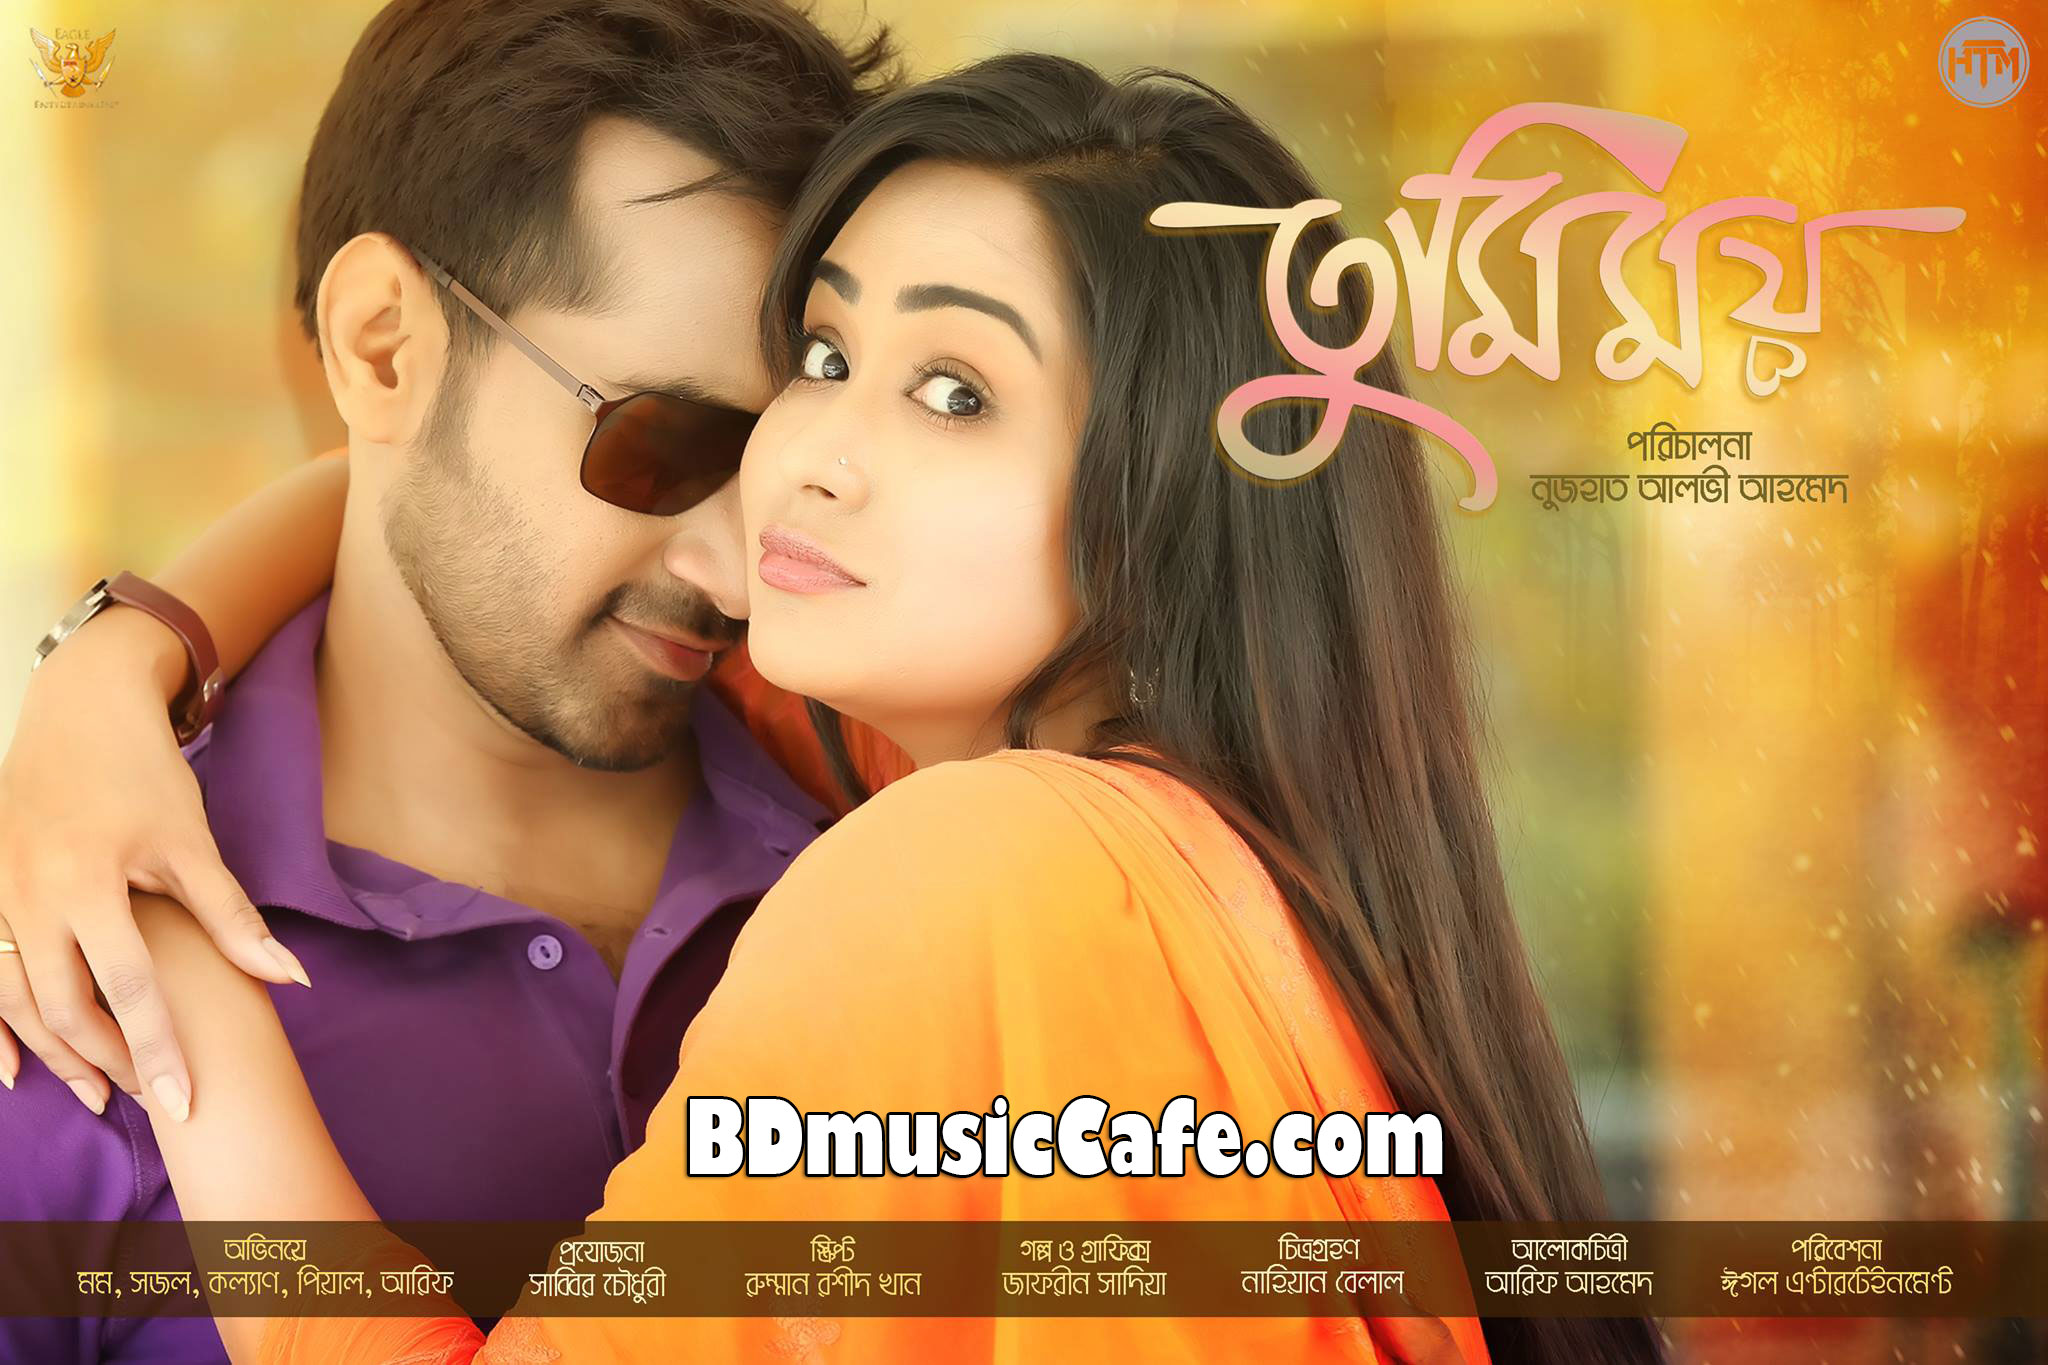 bangla full movie 2016 download